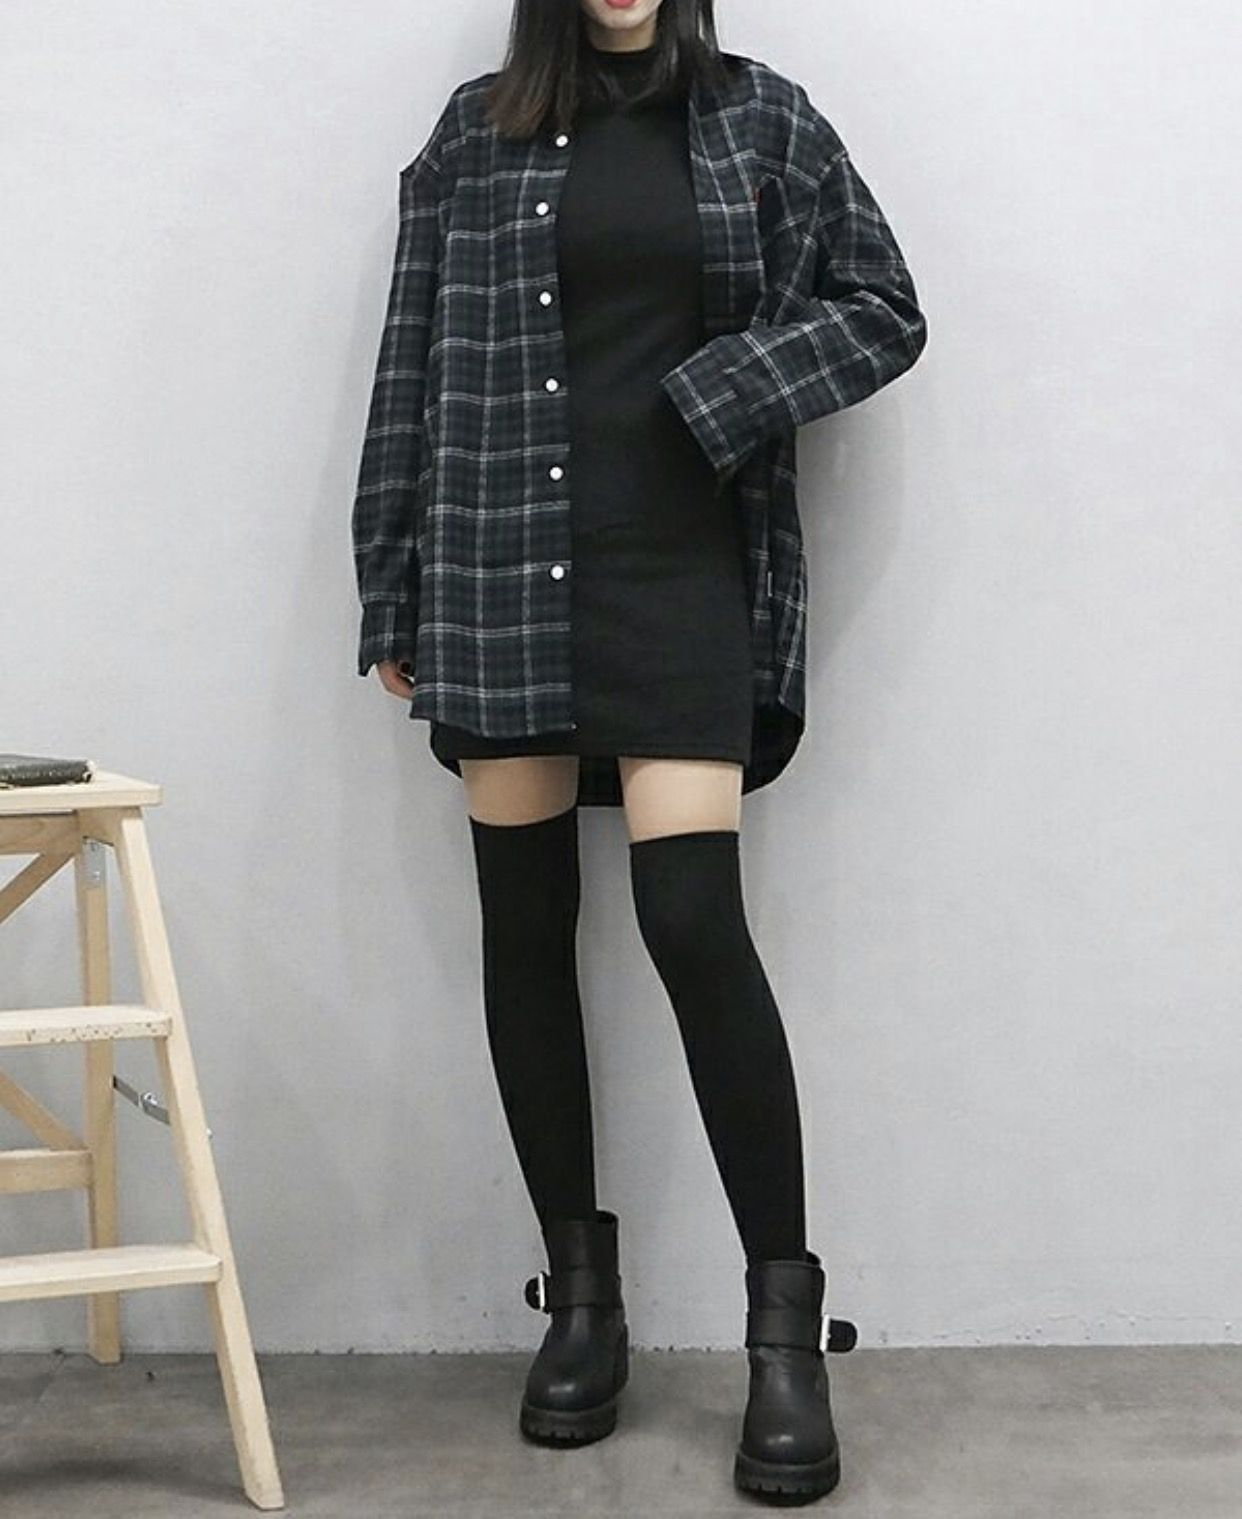 Korean flannel outfits  Pin by Madeleine Asselin on fashion  Pinterest  Clothes Korean